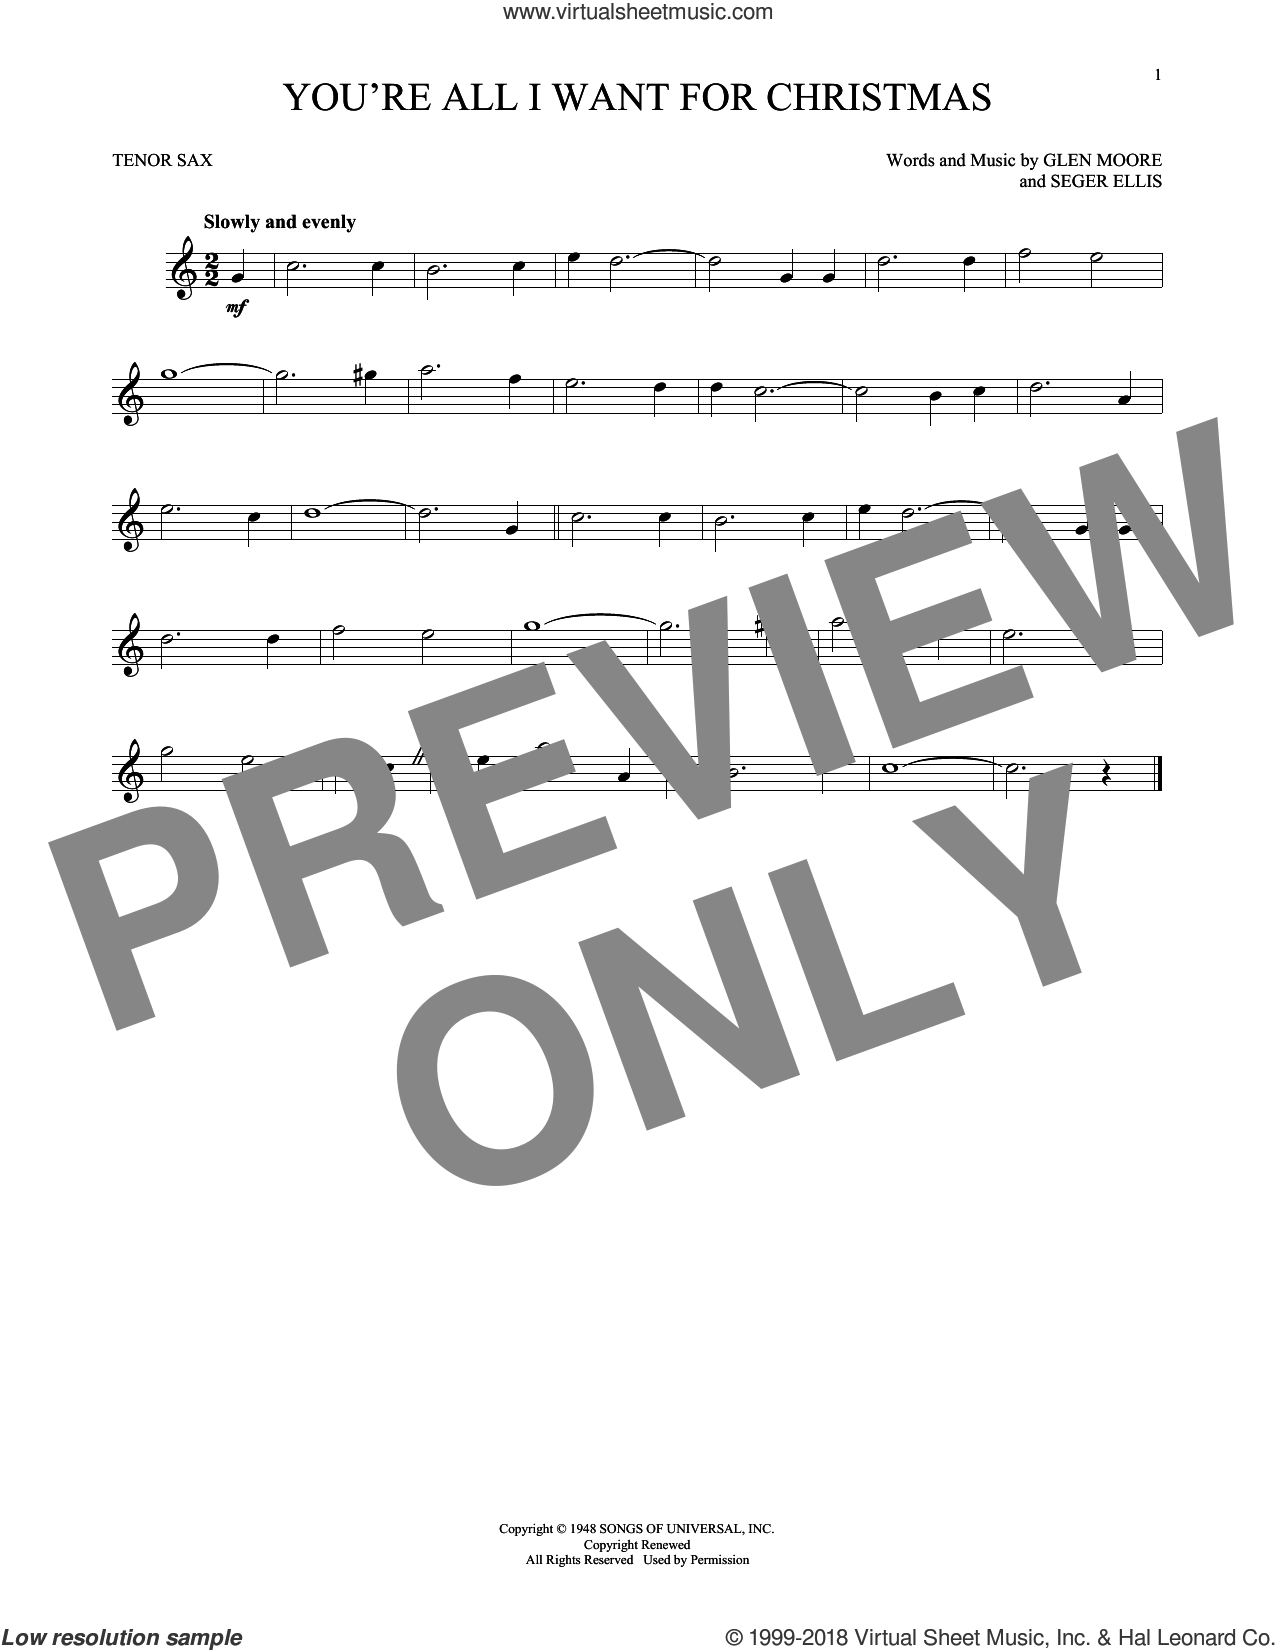 You're All I Want For Christmas sheet music for tenor saxophone solo by Glen Moore, Frank Gallagher, Glen Moore & Seger Ellis and Seger Ellis, intermediate skill level